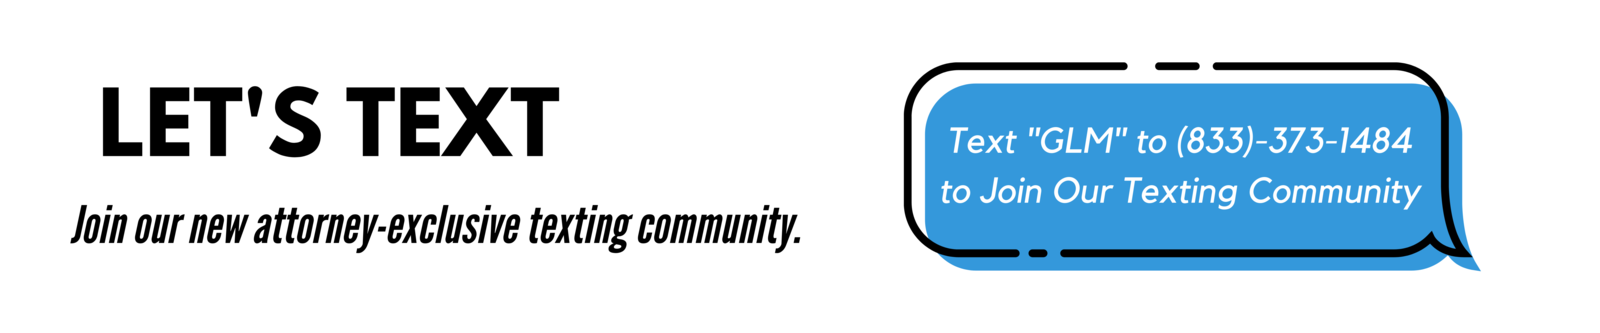 Join our new texting community